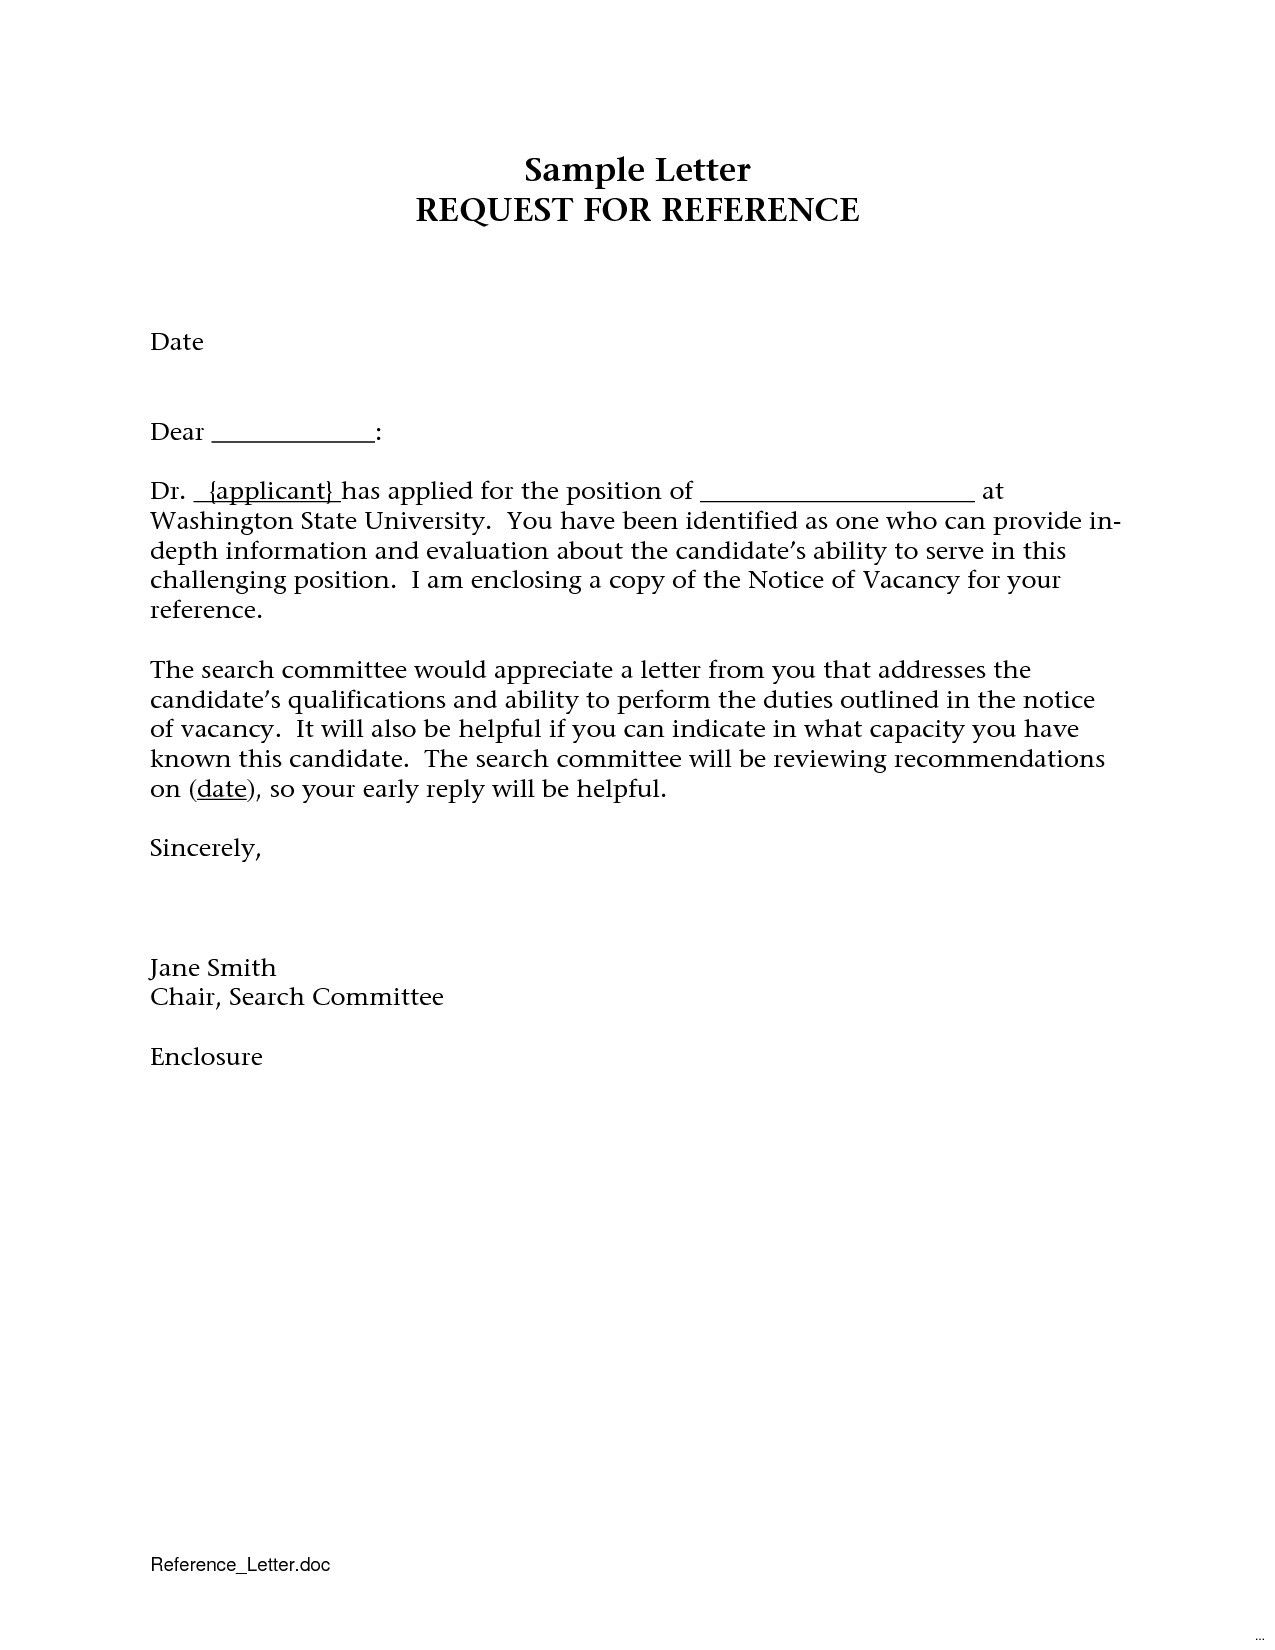 How to ask someone to write recommendation letter - Reference